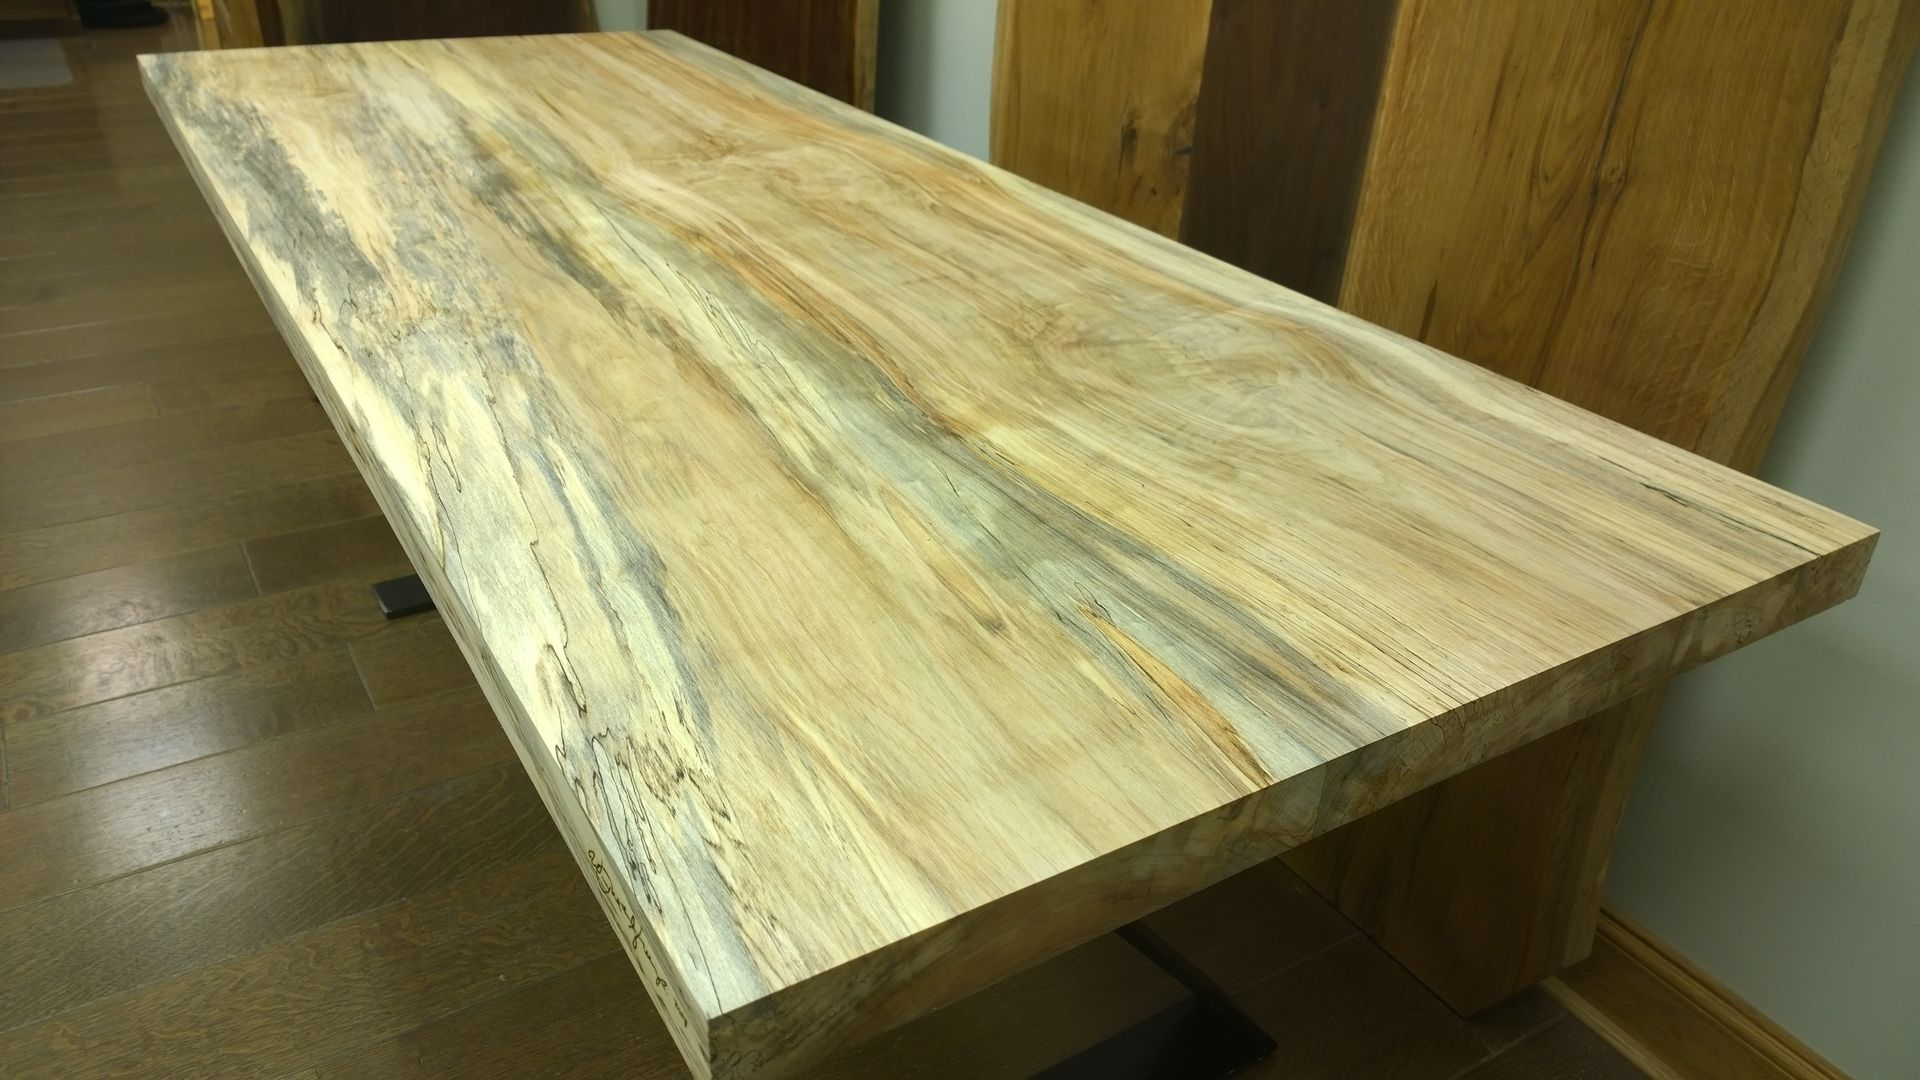 Custom Made Spalted Soft Maple Wooden Desk Top. Handmade Spalted Soft Maple Wooden Desk Top by Stump Standards